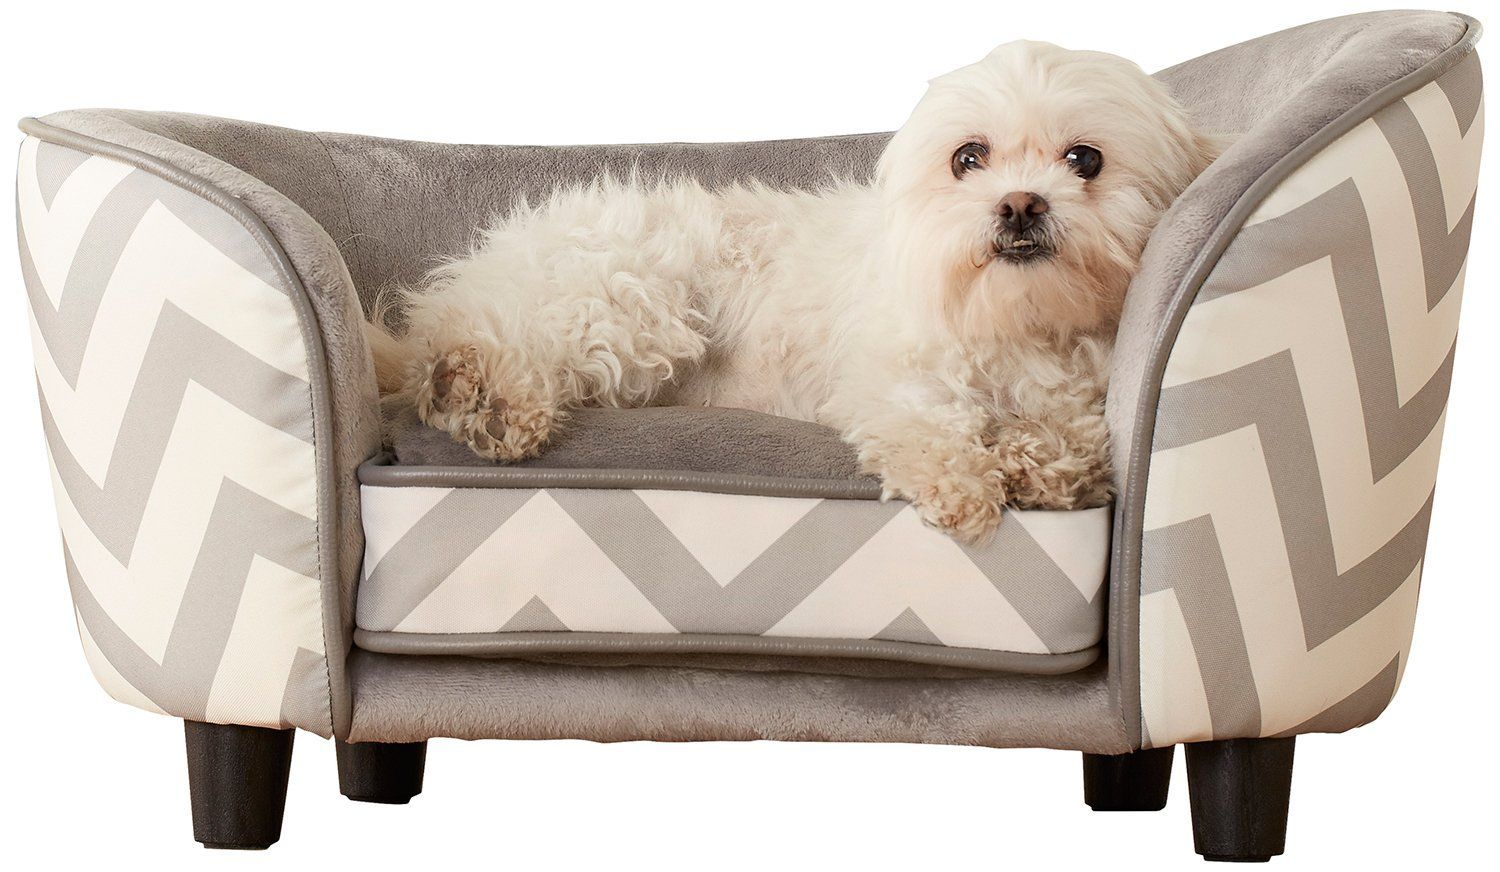 Enchanted Home Pet Snuggle Sofa Bed Chevron